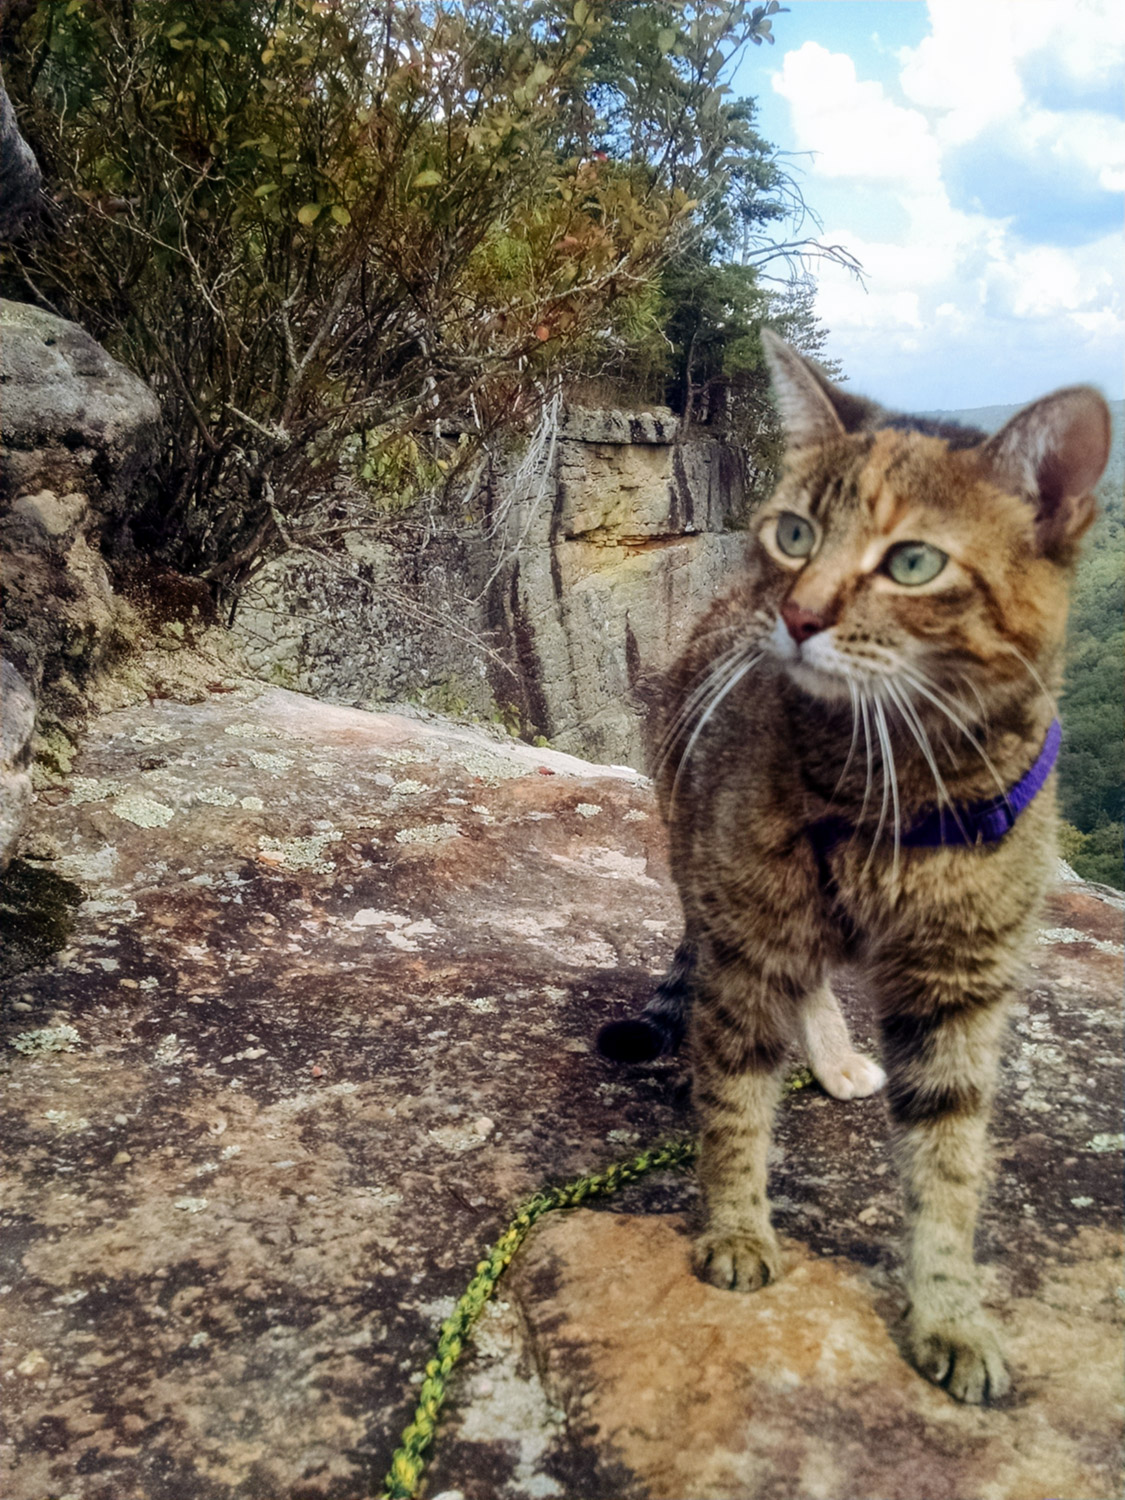 Not only is Josie a true adventurer, she is totally adorable, too! (Photo: Erin Dush)